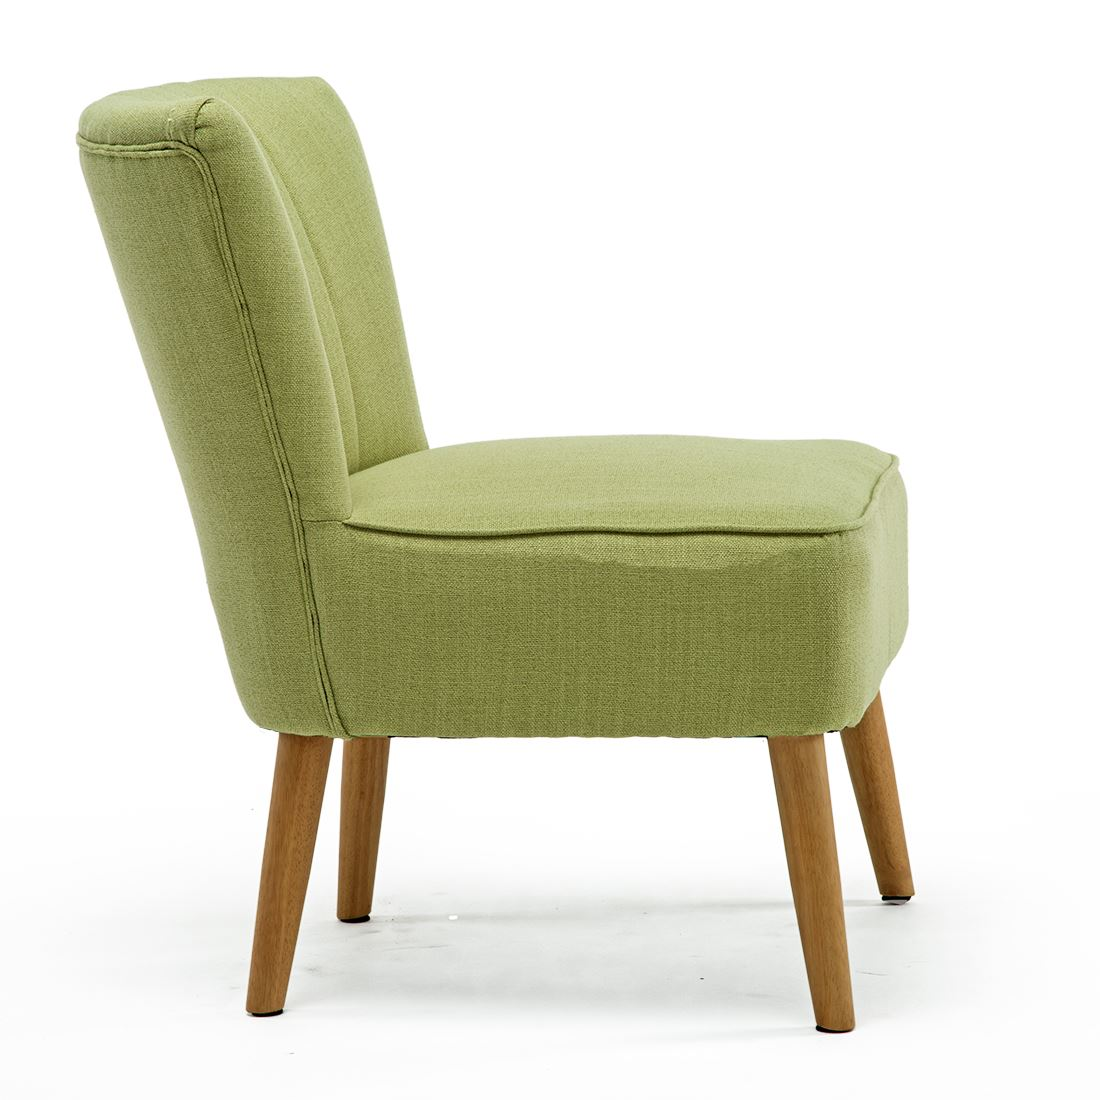 Ayla-Linen-Retro-Occasional-Hallway-Bedroom-Living-Room-Accent-Chair-Fabric-Tub thumbnail 21